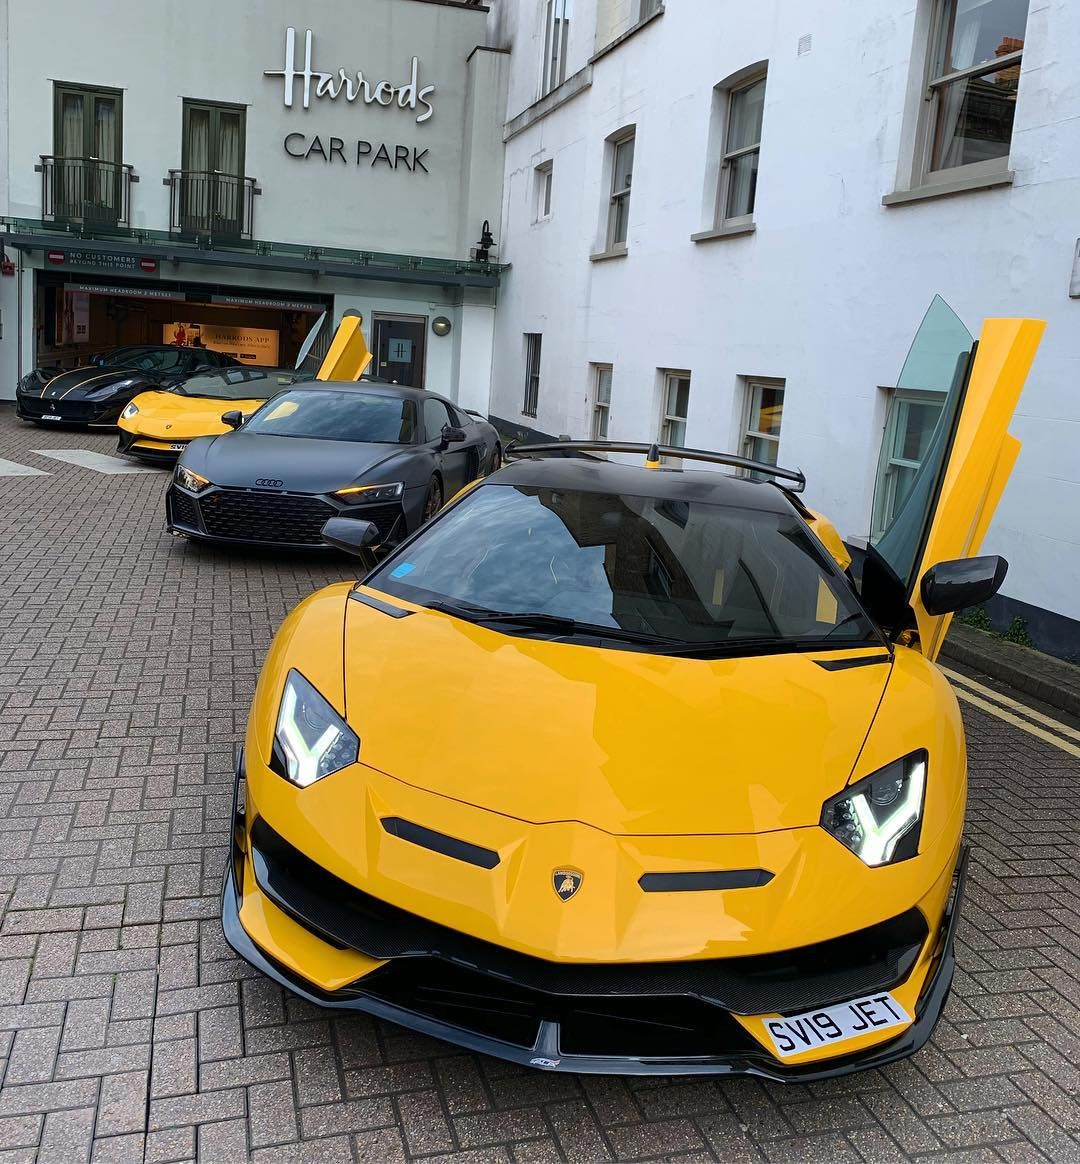 Pin By Kxng Loso On Billionaires Paradise Luxury Cars Range Rover Super Cars Luxury Car Logos